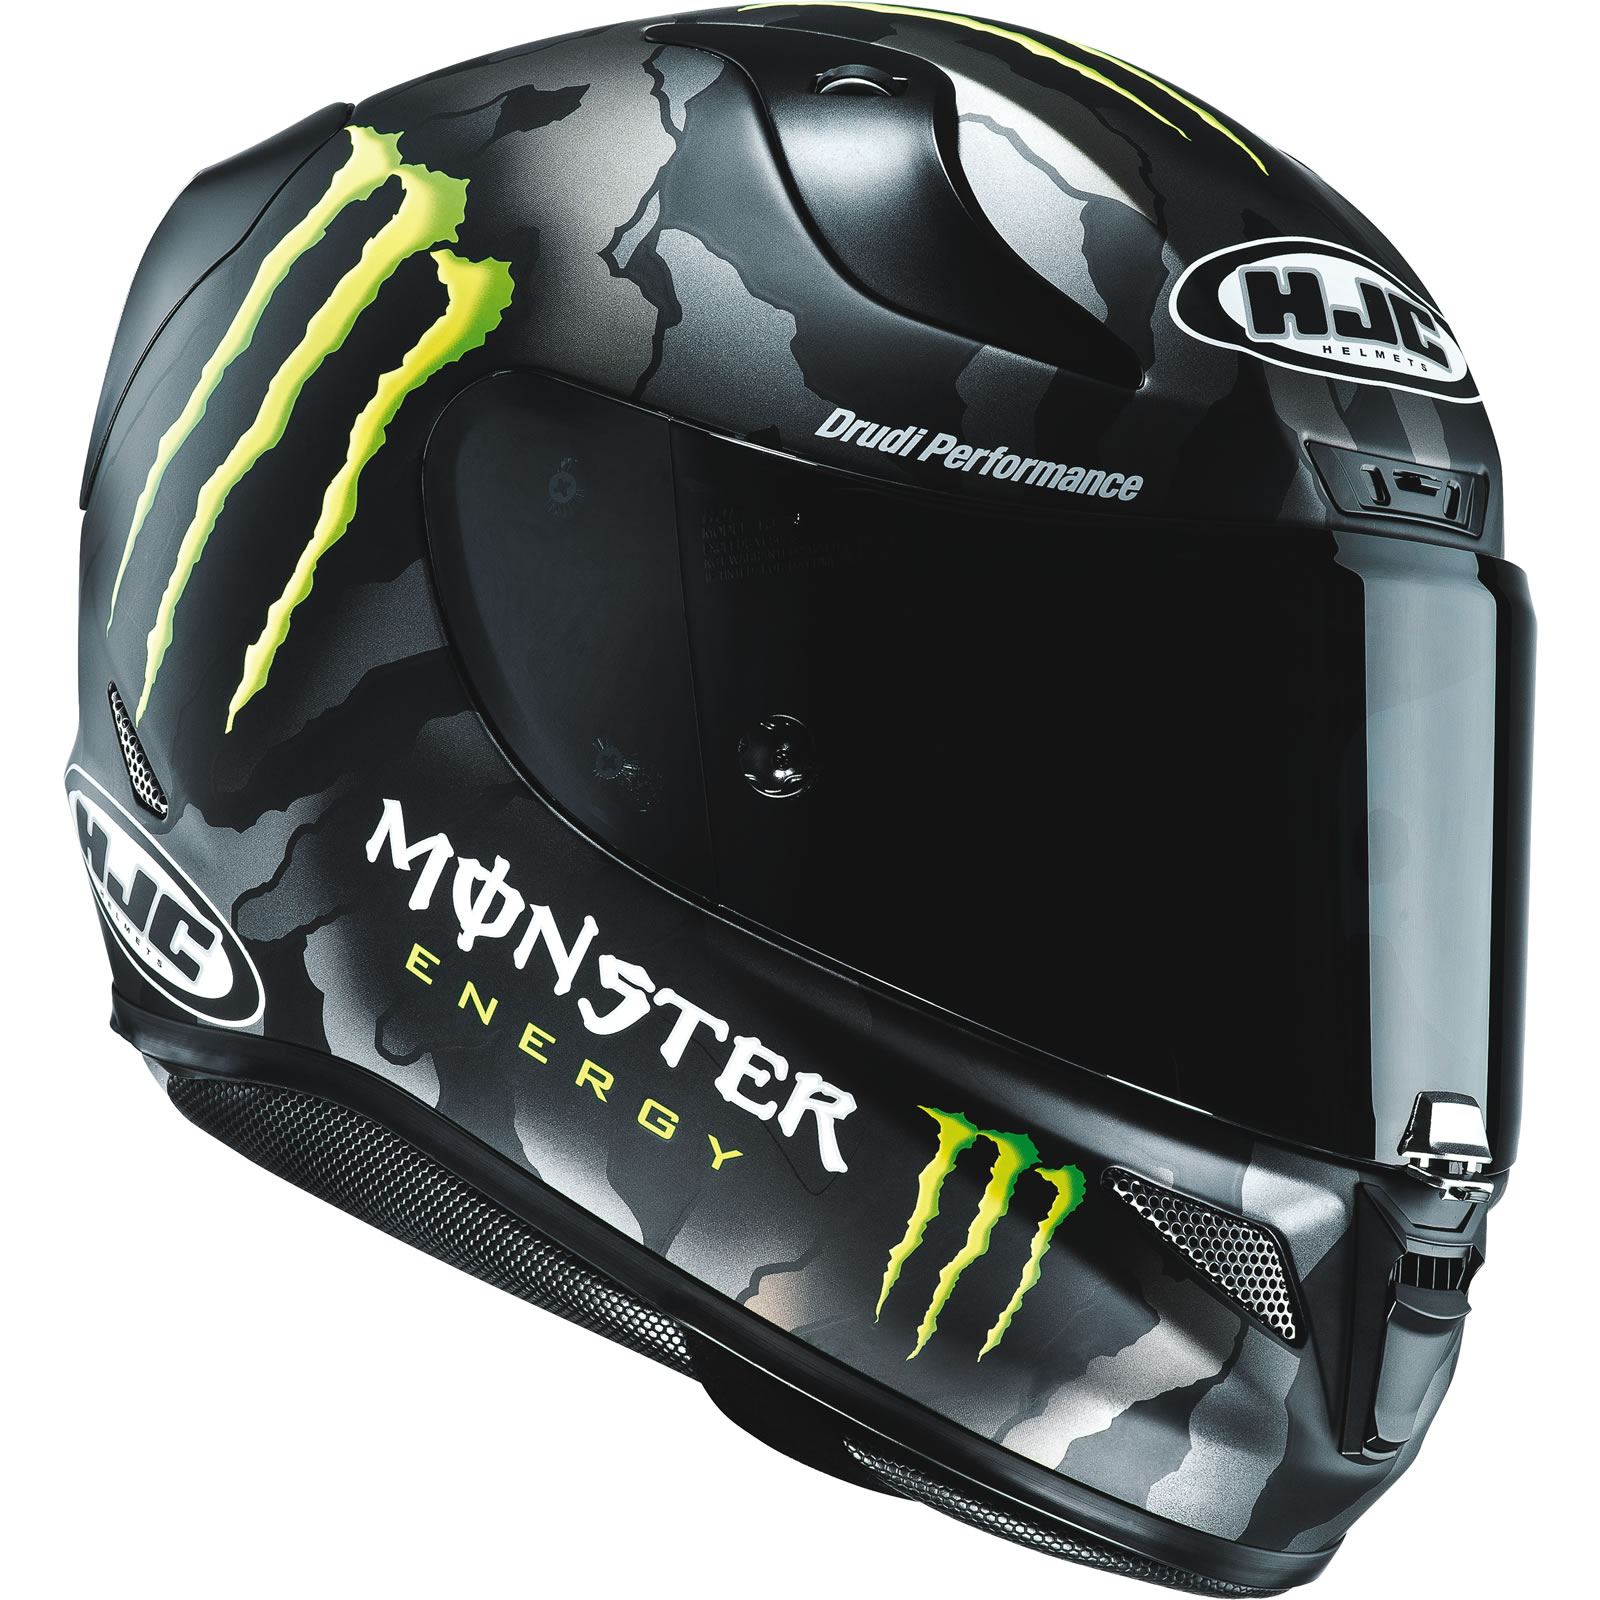 Hjc Rpha 11 >> Hjc Rpha 11 Monster Military Limited Edition Motorcycle Helmet